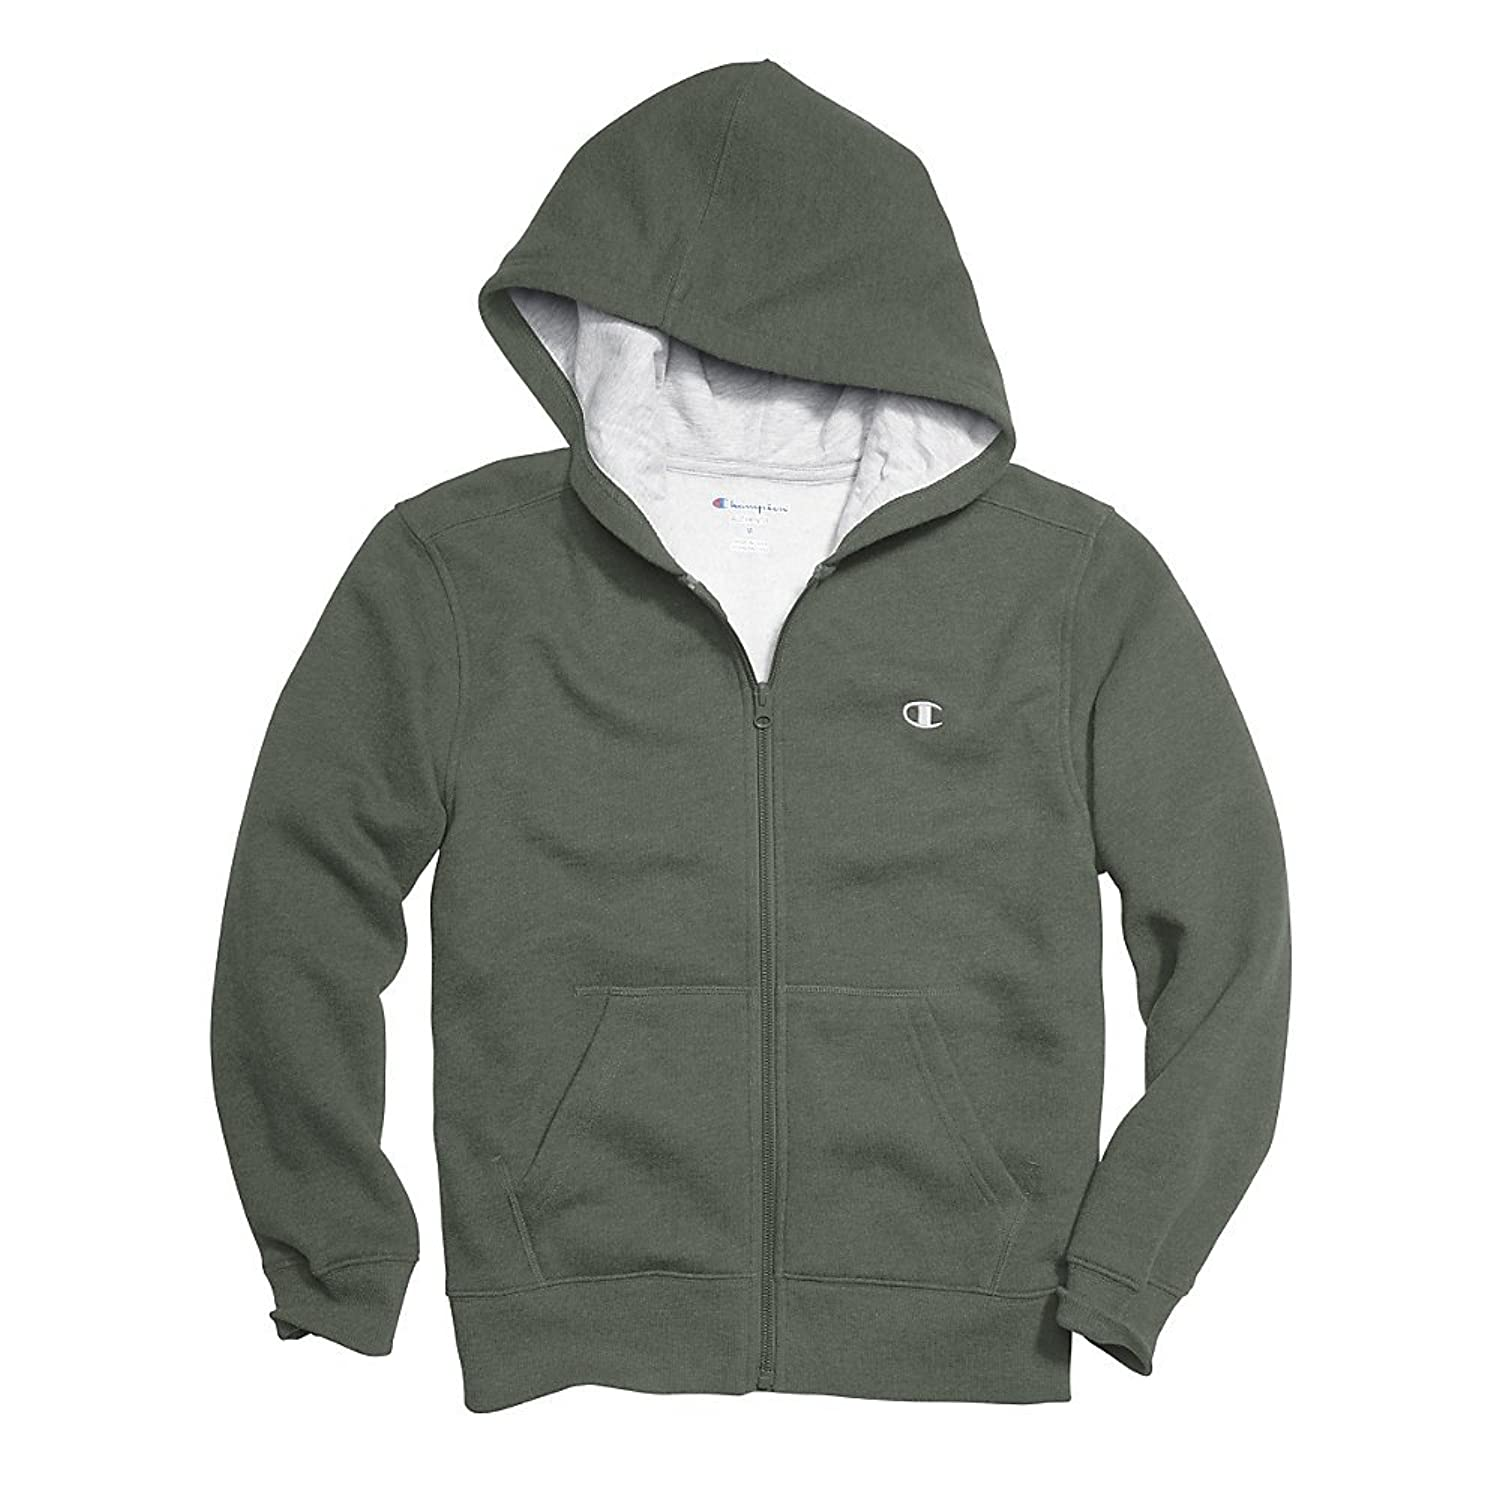 Top Champion Boys Zip Hoodie,C8369R,S,Fatigue Green supplier